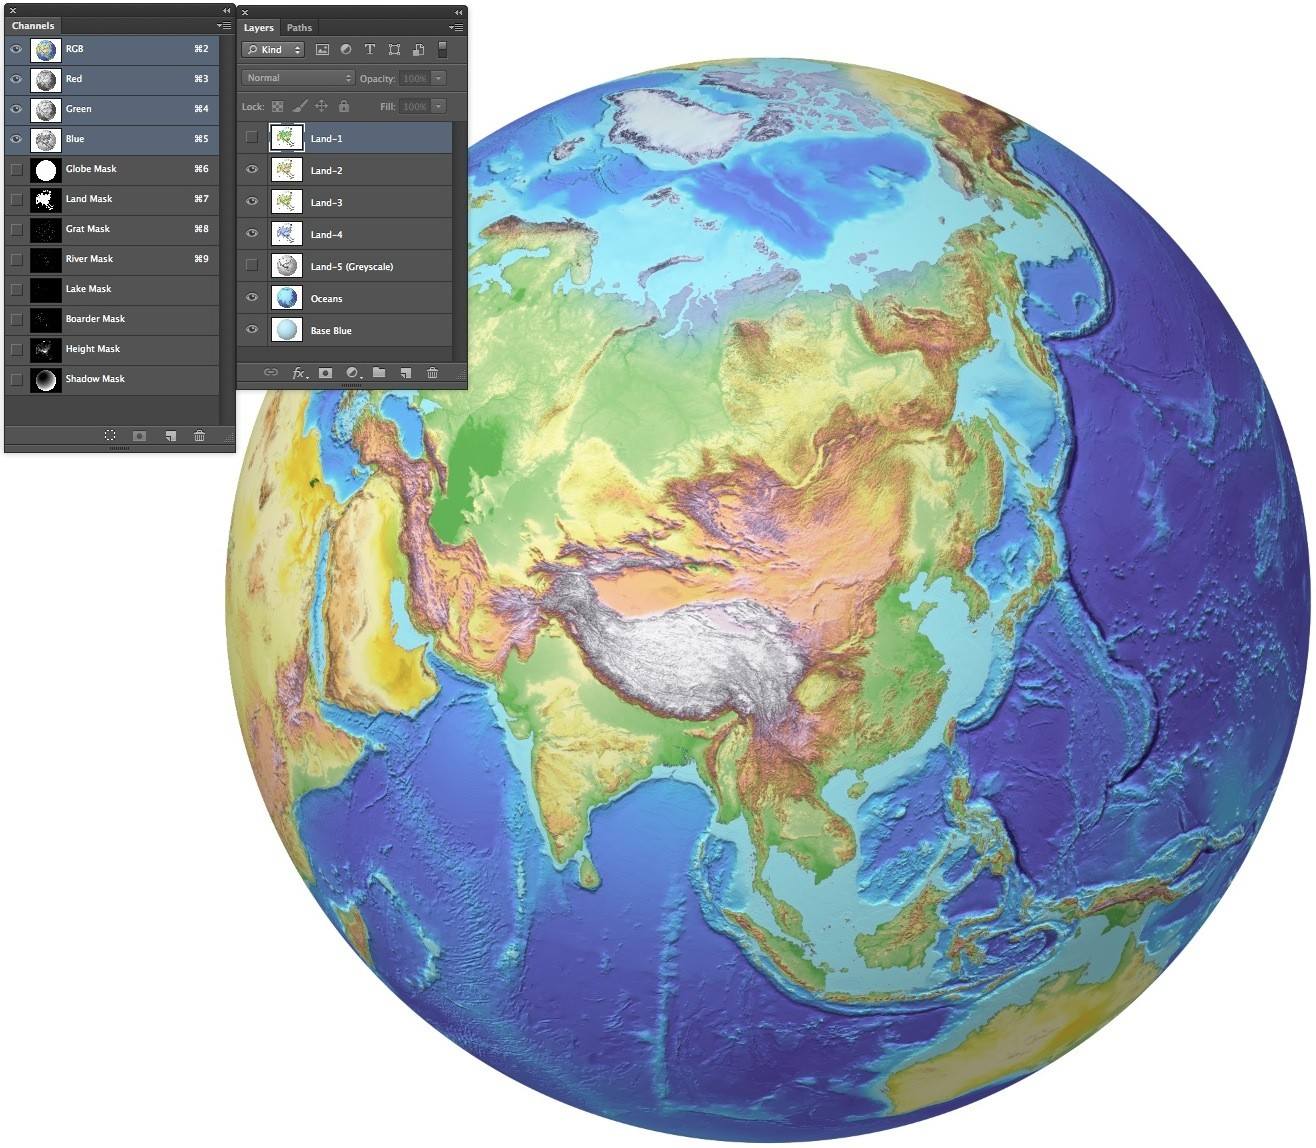 Globe 40n 100e 4 colour multi layered photoshop format with a globe 40n 100e 4 colour multi layered photoshop format with a set of masks gumiabroncs Gallery